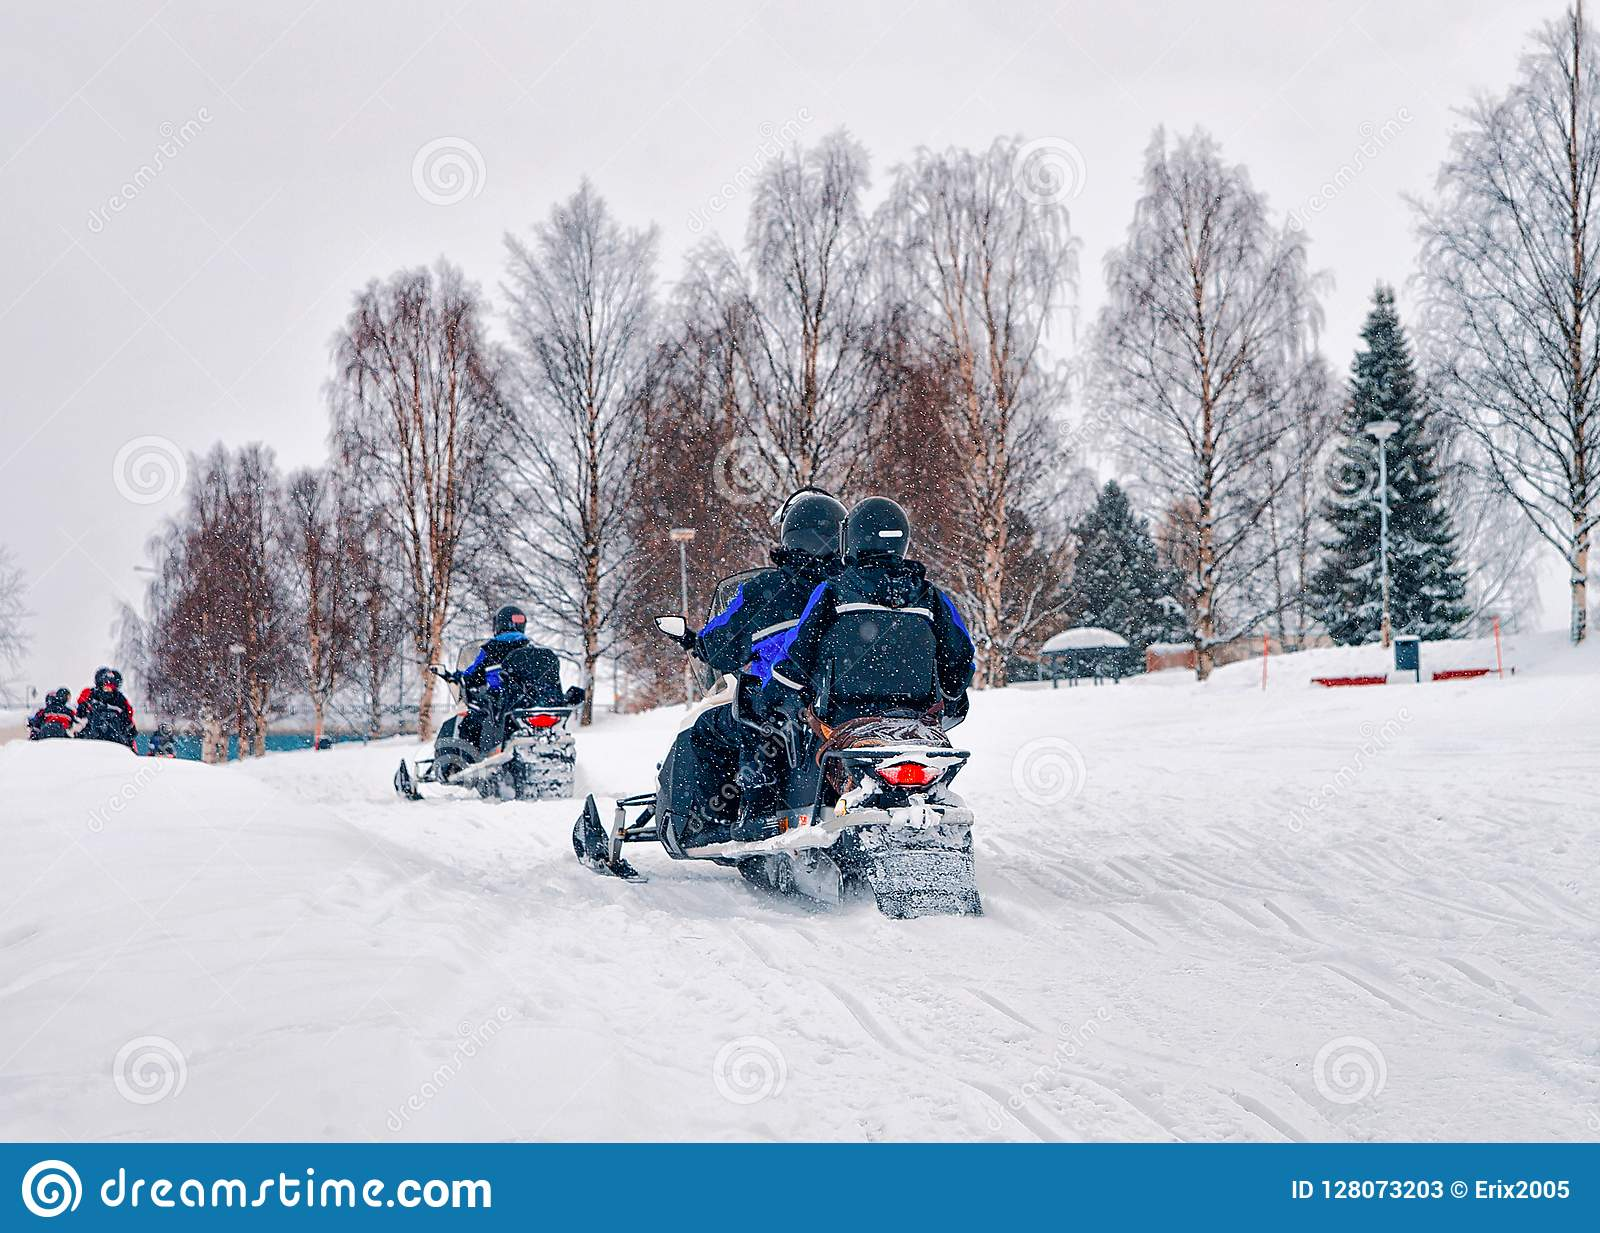 People on Snow mobiles Winter Finland Lapland during Christmas